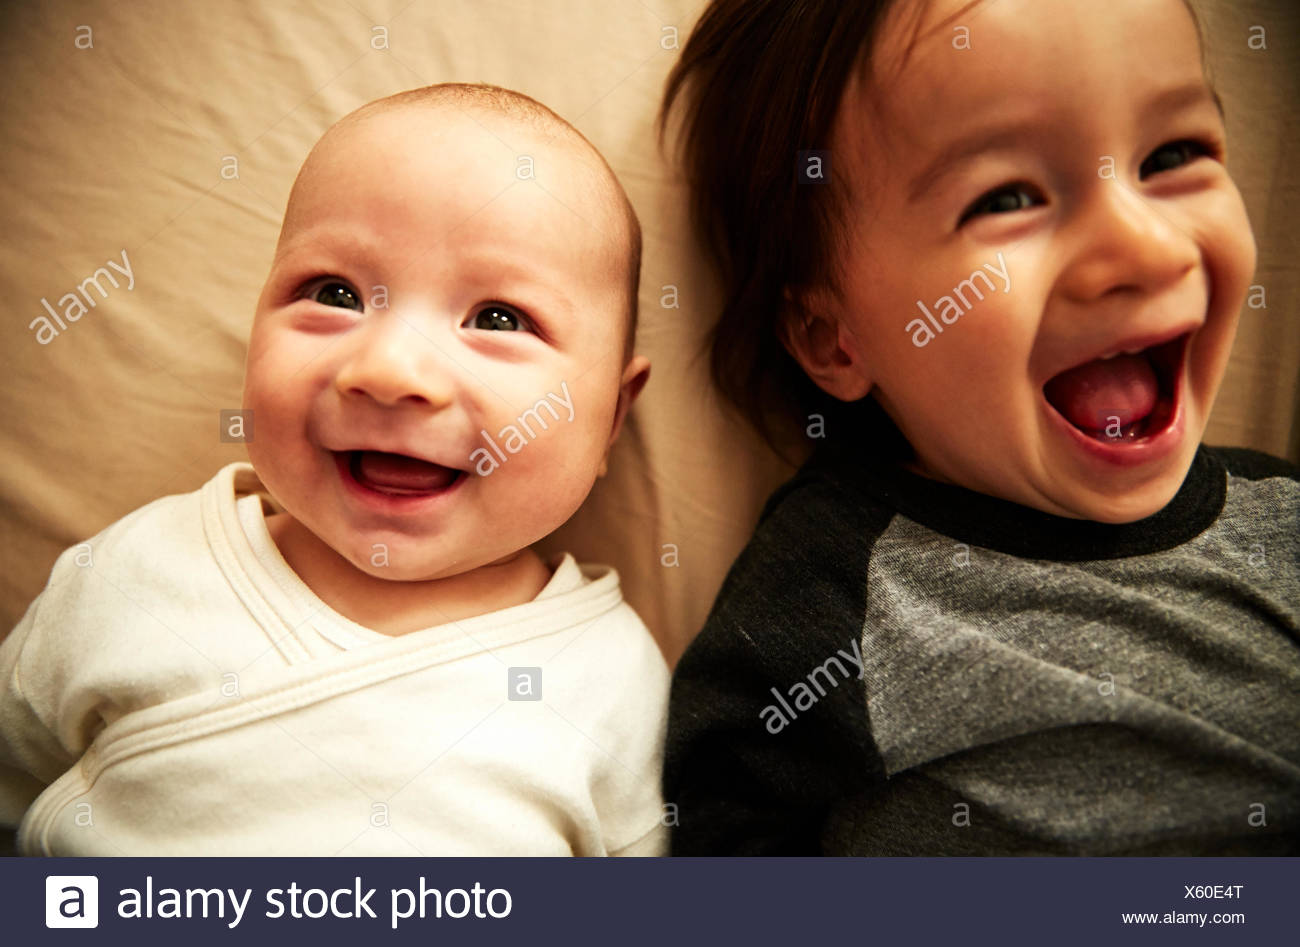 Overhead view of male toddler and baby brother laughing - Stock Image